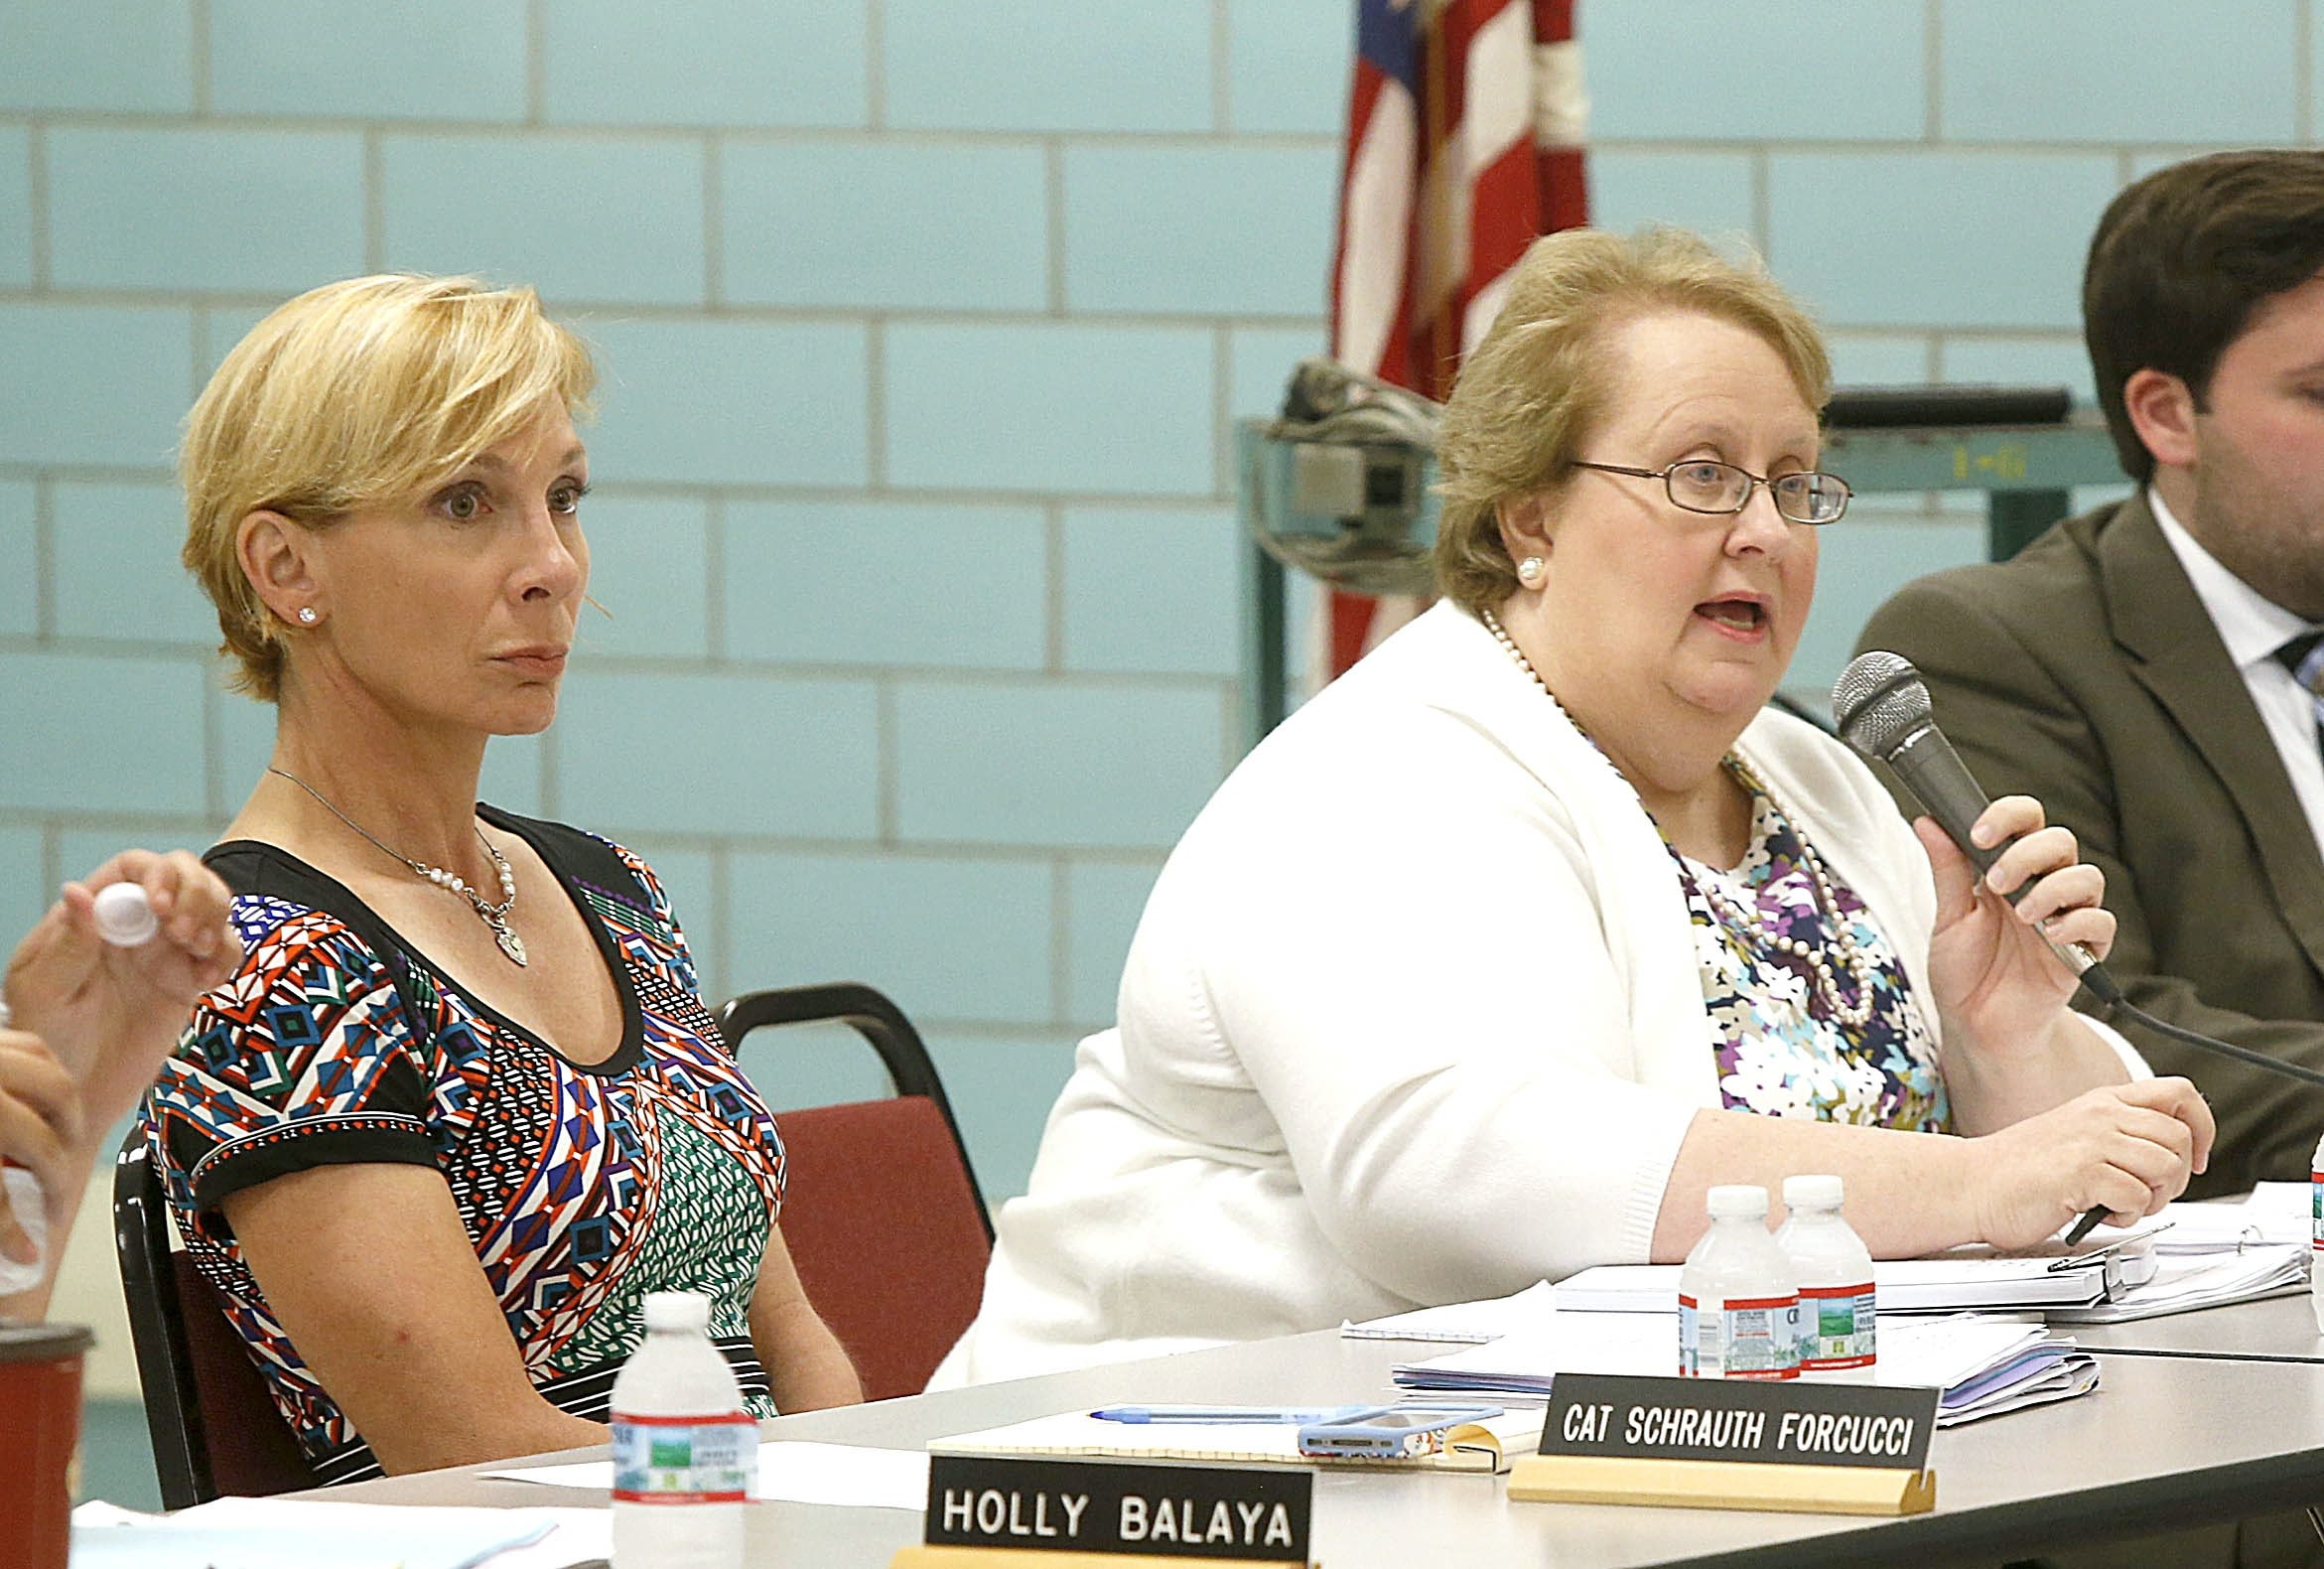 Catherine Schrauth Forcucci, left, with her attorney, Margaret Murphy, while questioning Superintendent Richard Jetter at the public hearing Wednesday in Armor Elementary School.